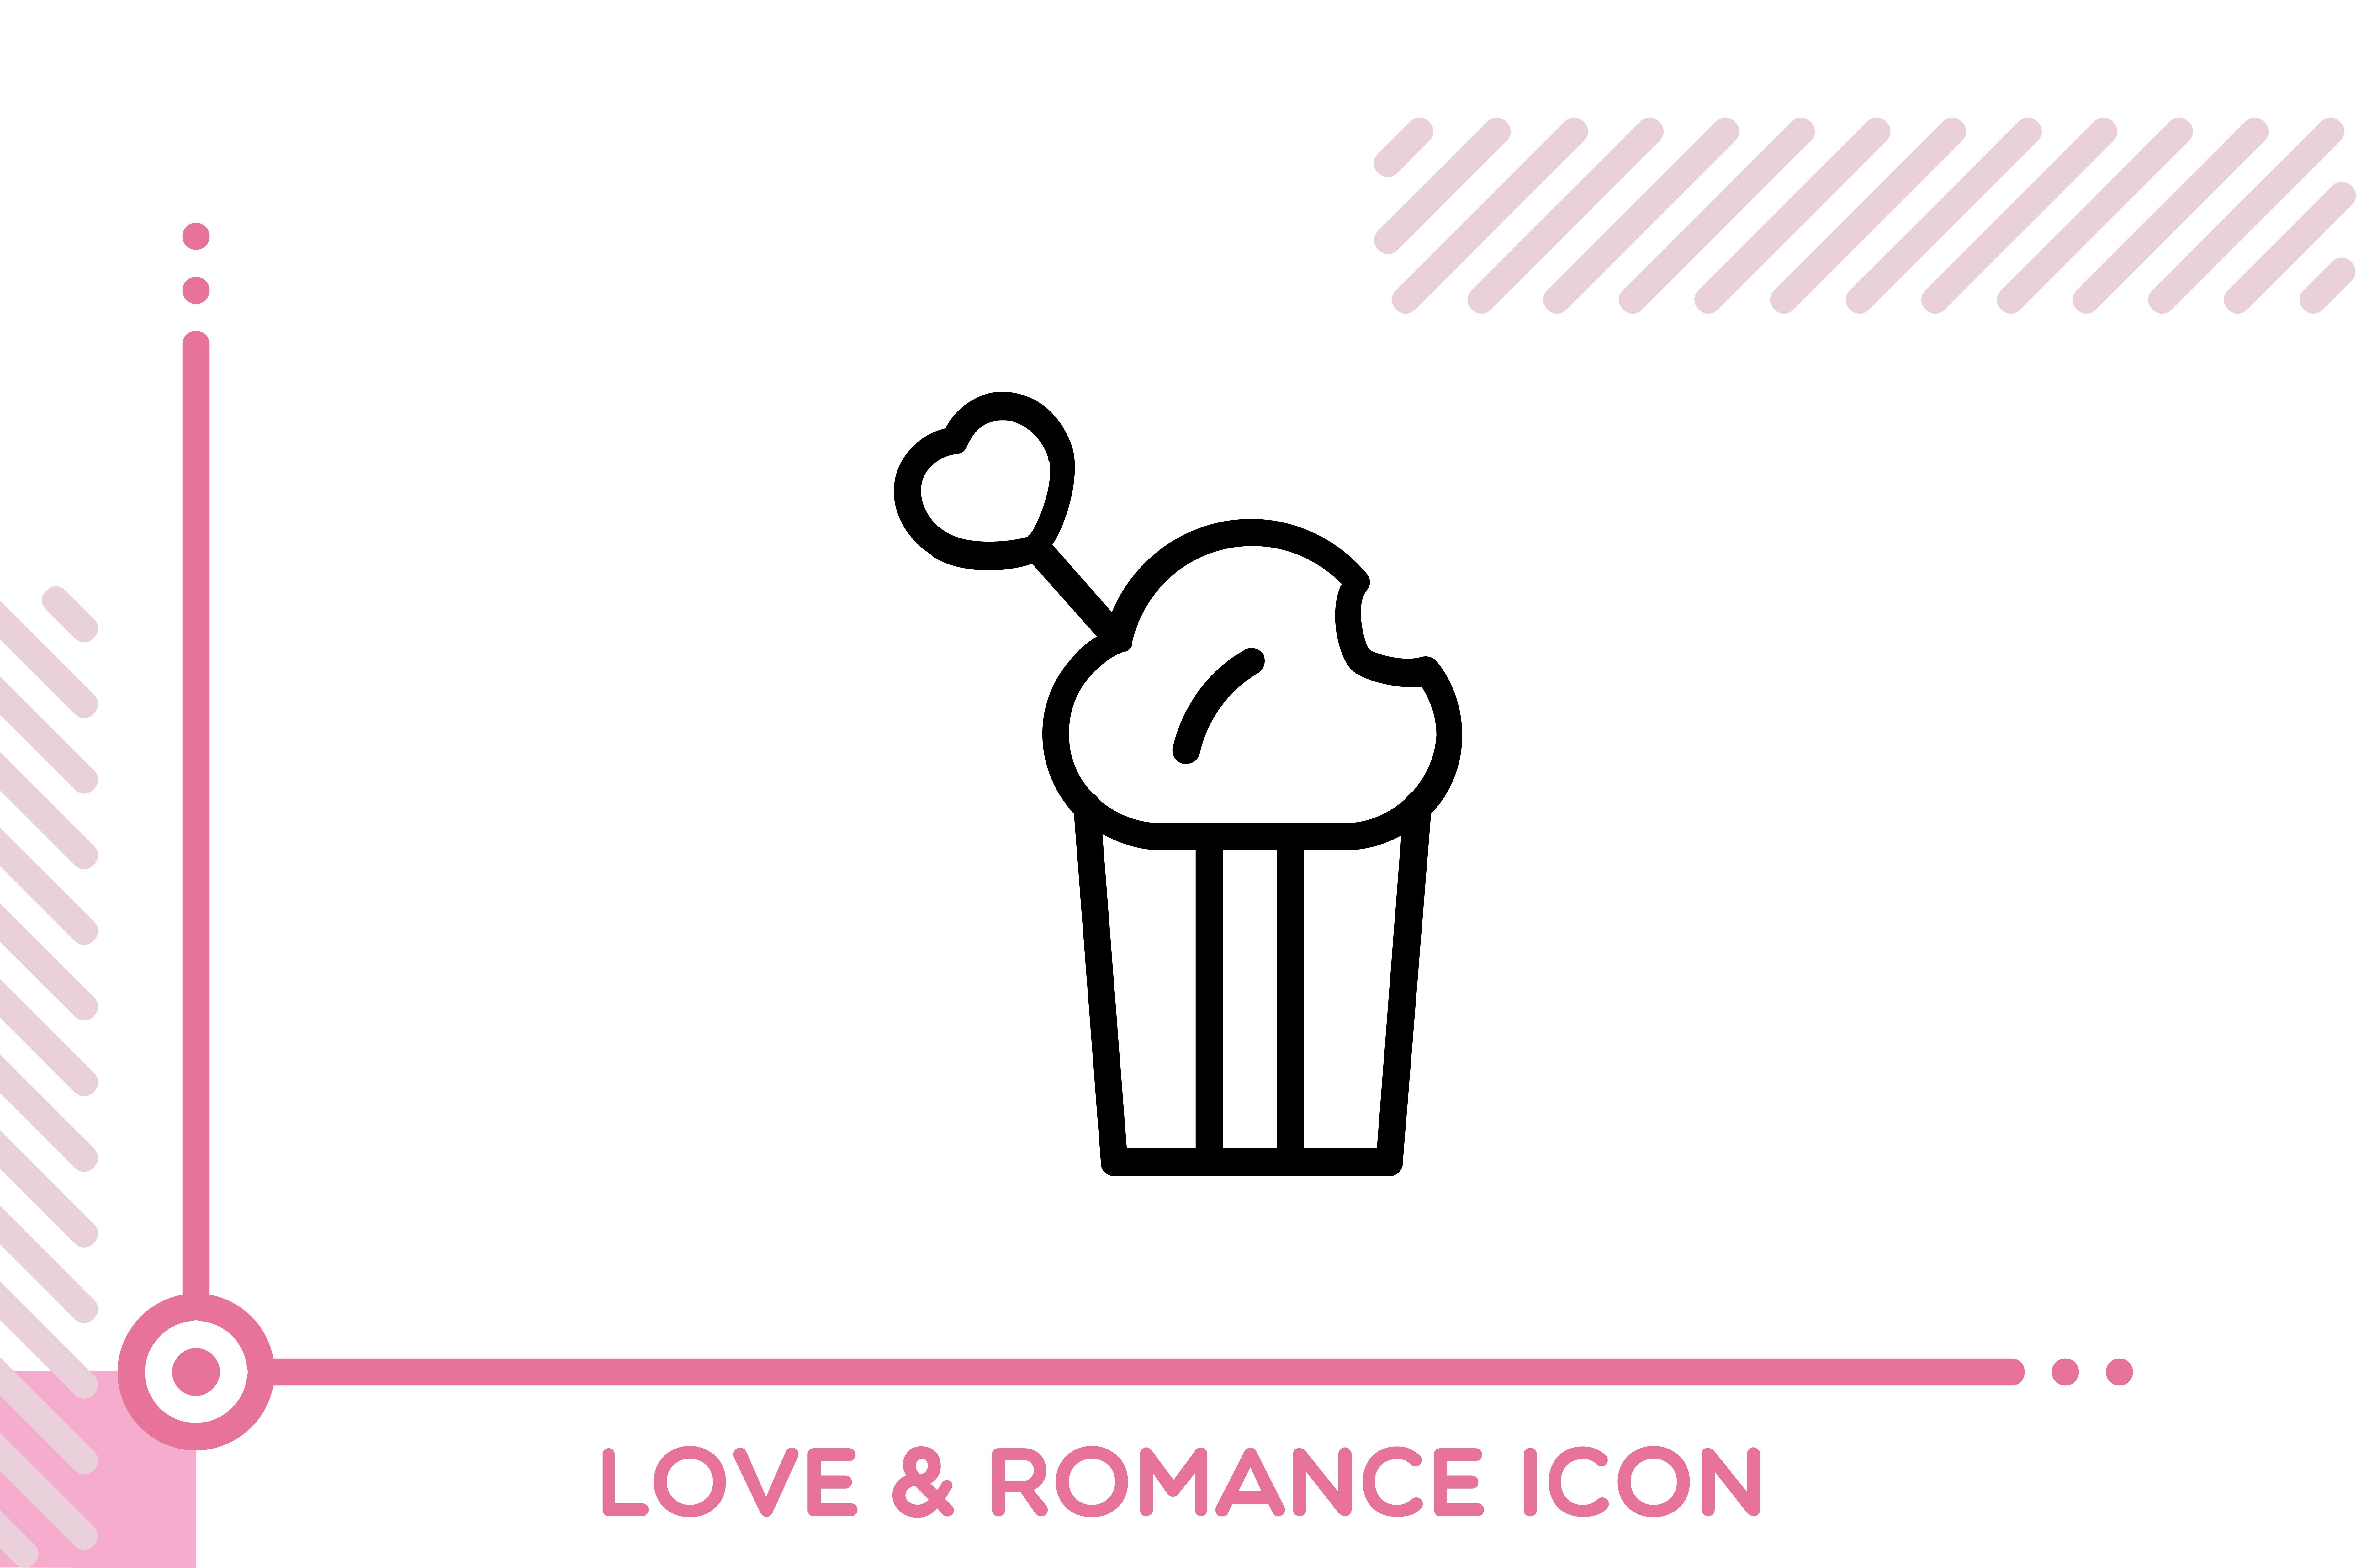 Download Free Love And Romance Candy Graphic By Freddyadho Creative Fabrica for Cricut Explore, Silhouette and other cutting machines.